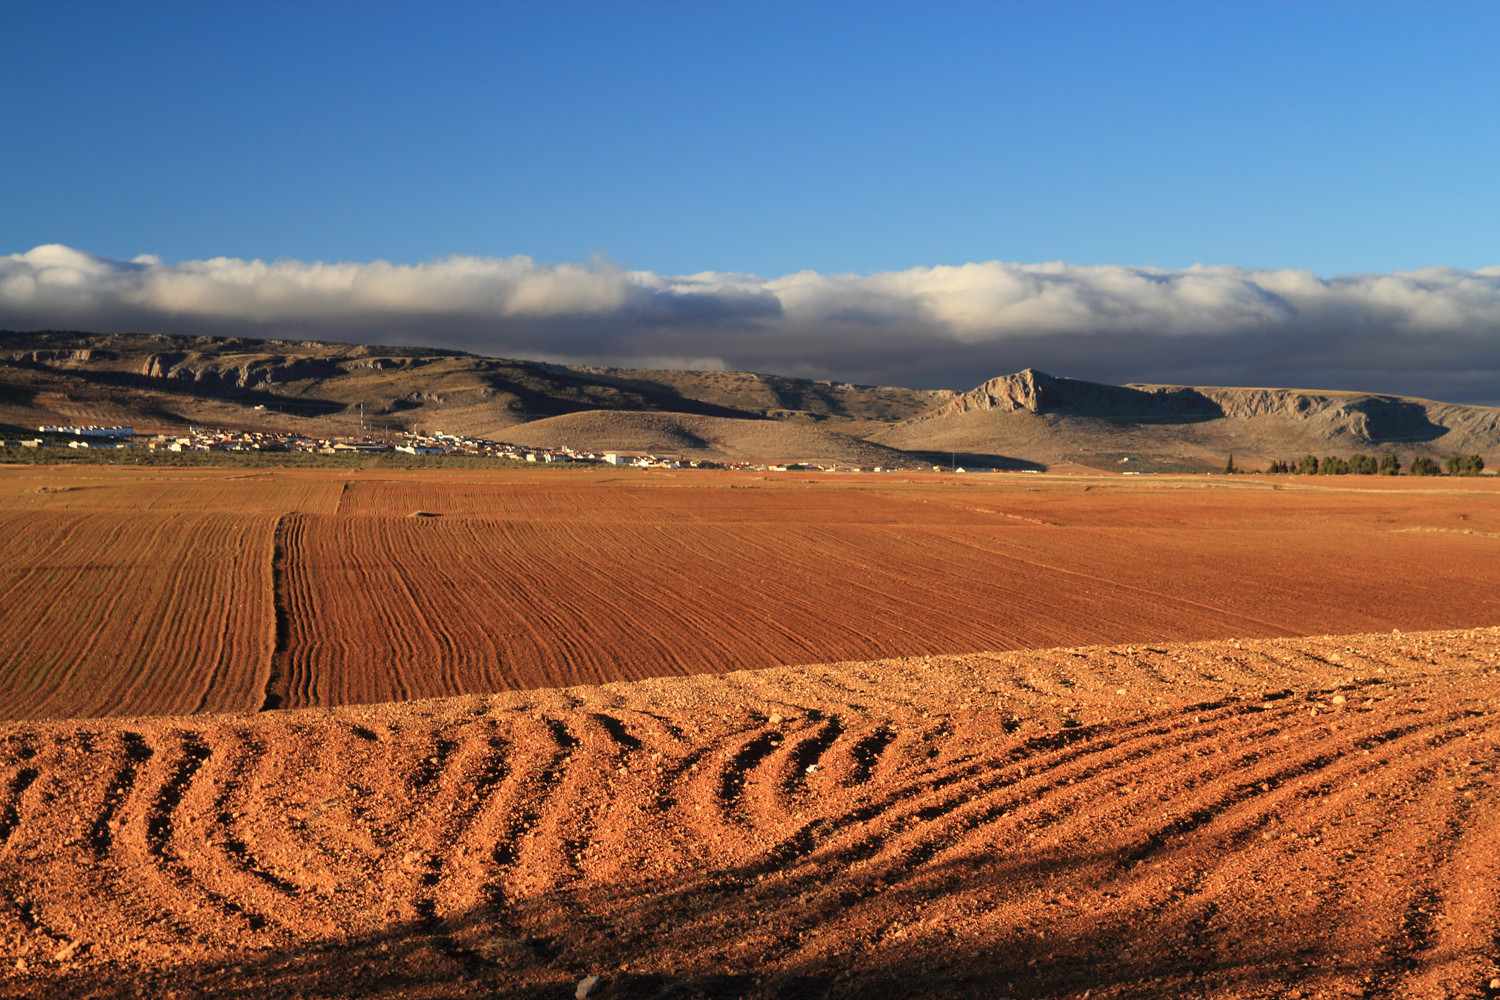 The Red Countryside near Guadix